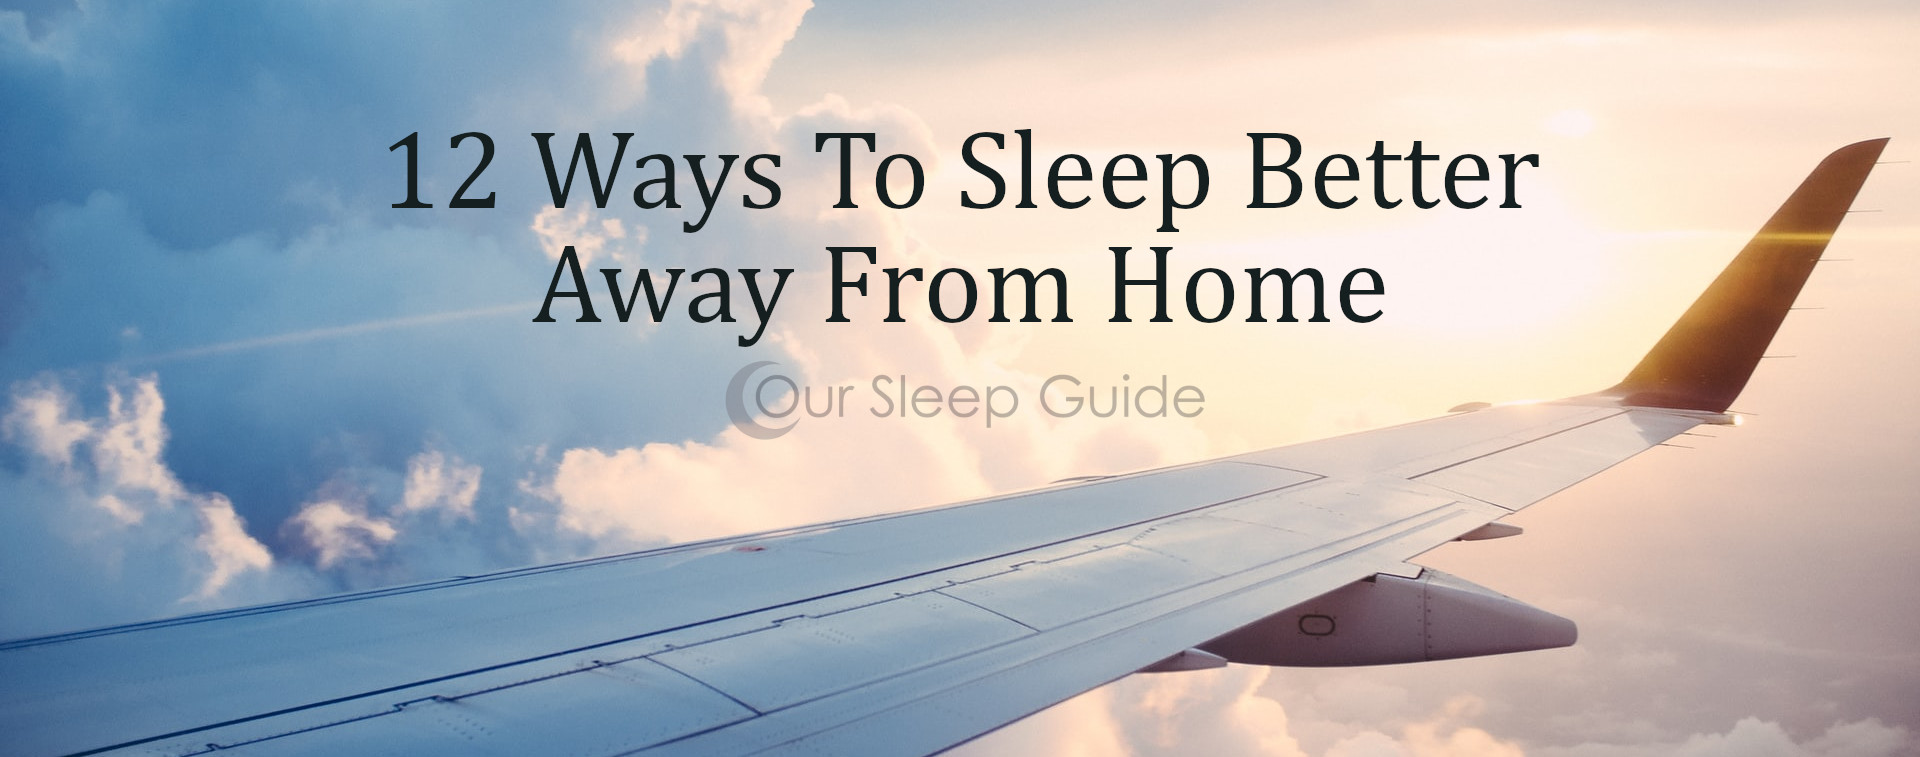 12 ways to sleep better away from home